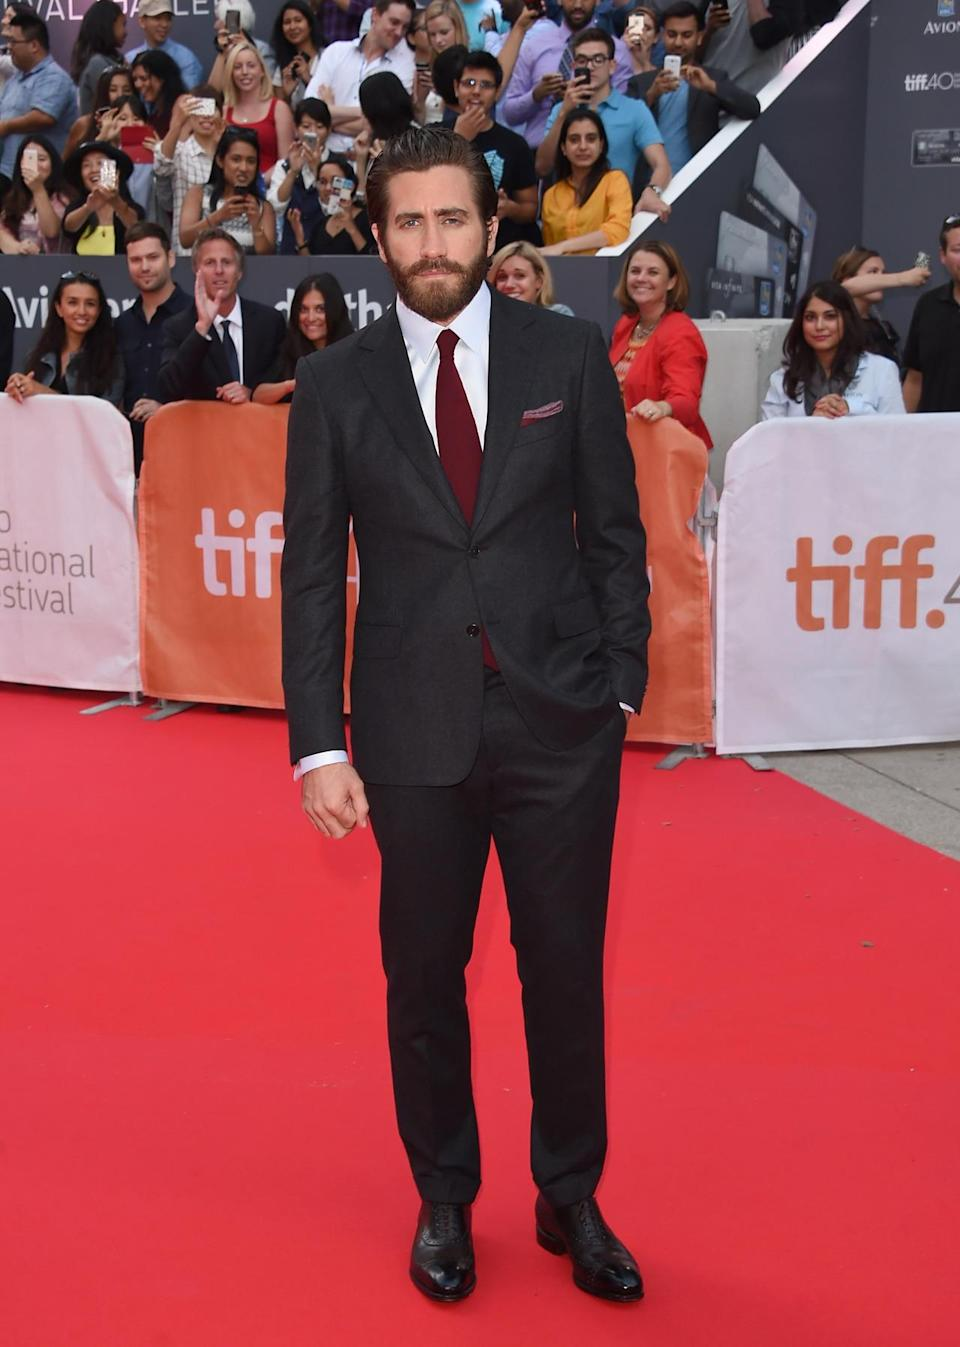 "<p>From Venice, Italy to Toronto, Canada, in a matter of days for two different movies! Attending the Ontario-based festival, the actor traveled across multiple time zones to promote ""Demolition,"" in which he plays a widower on a journey of self-destruction. </p>"